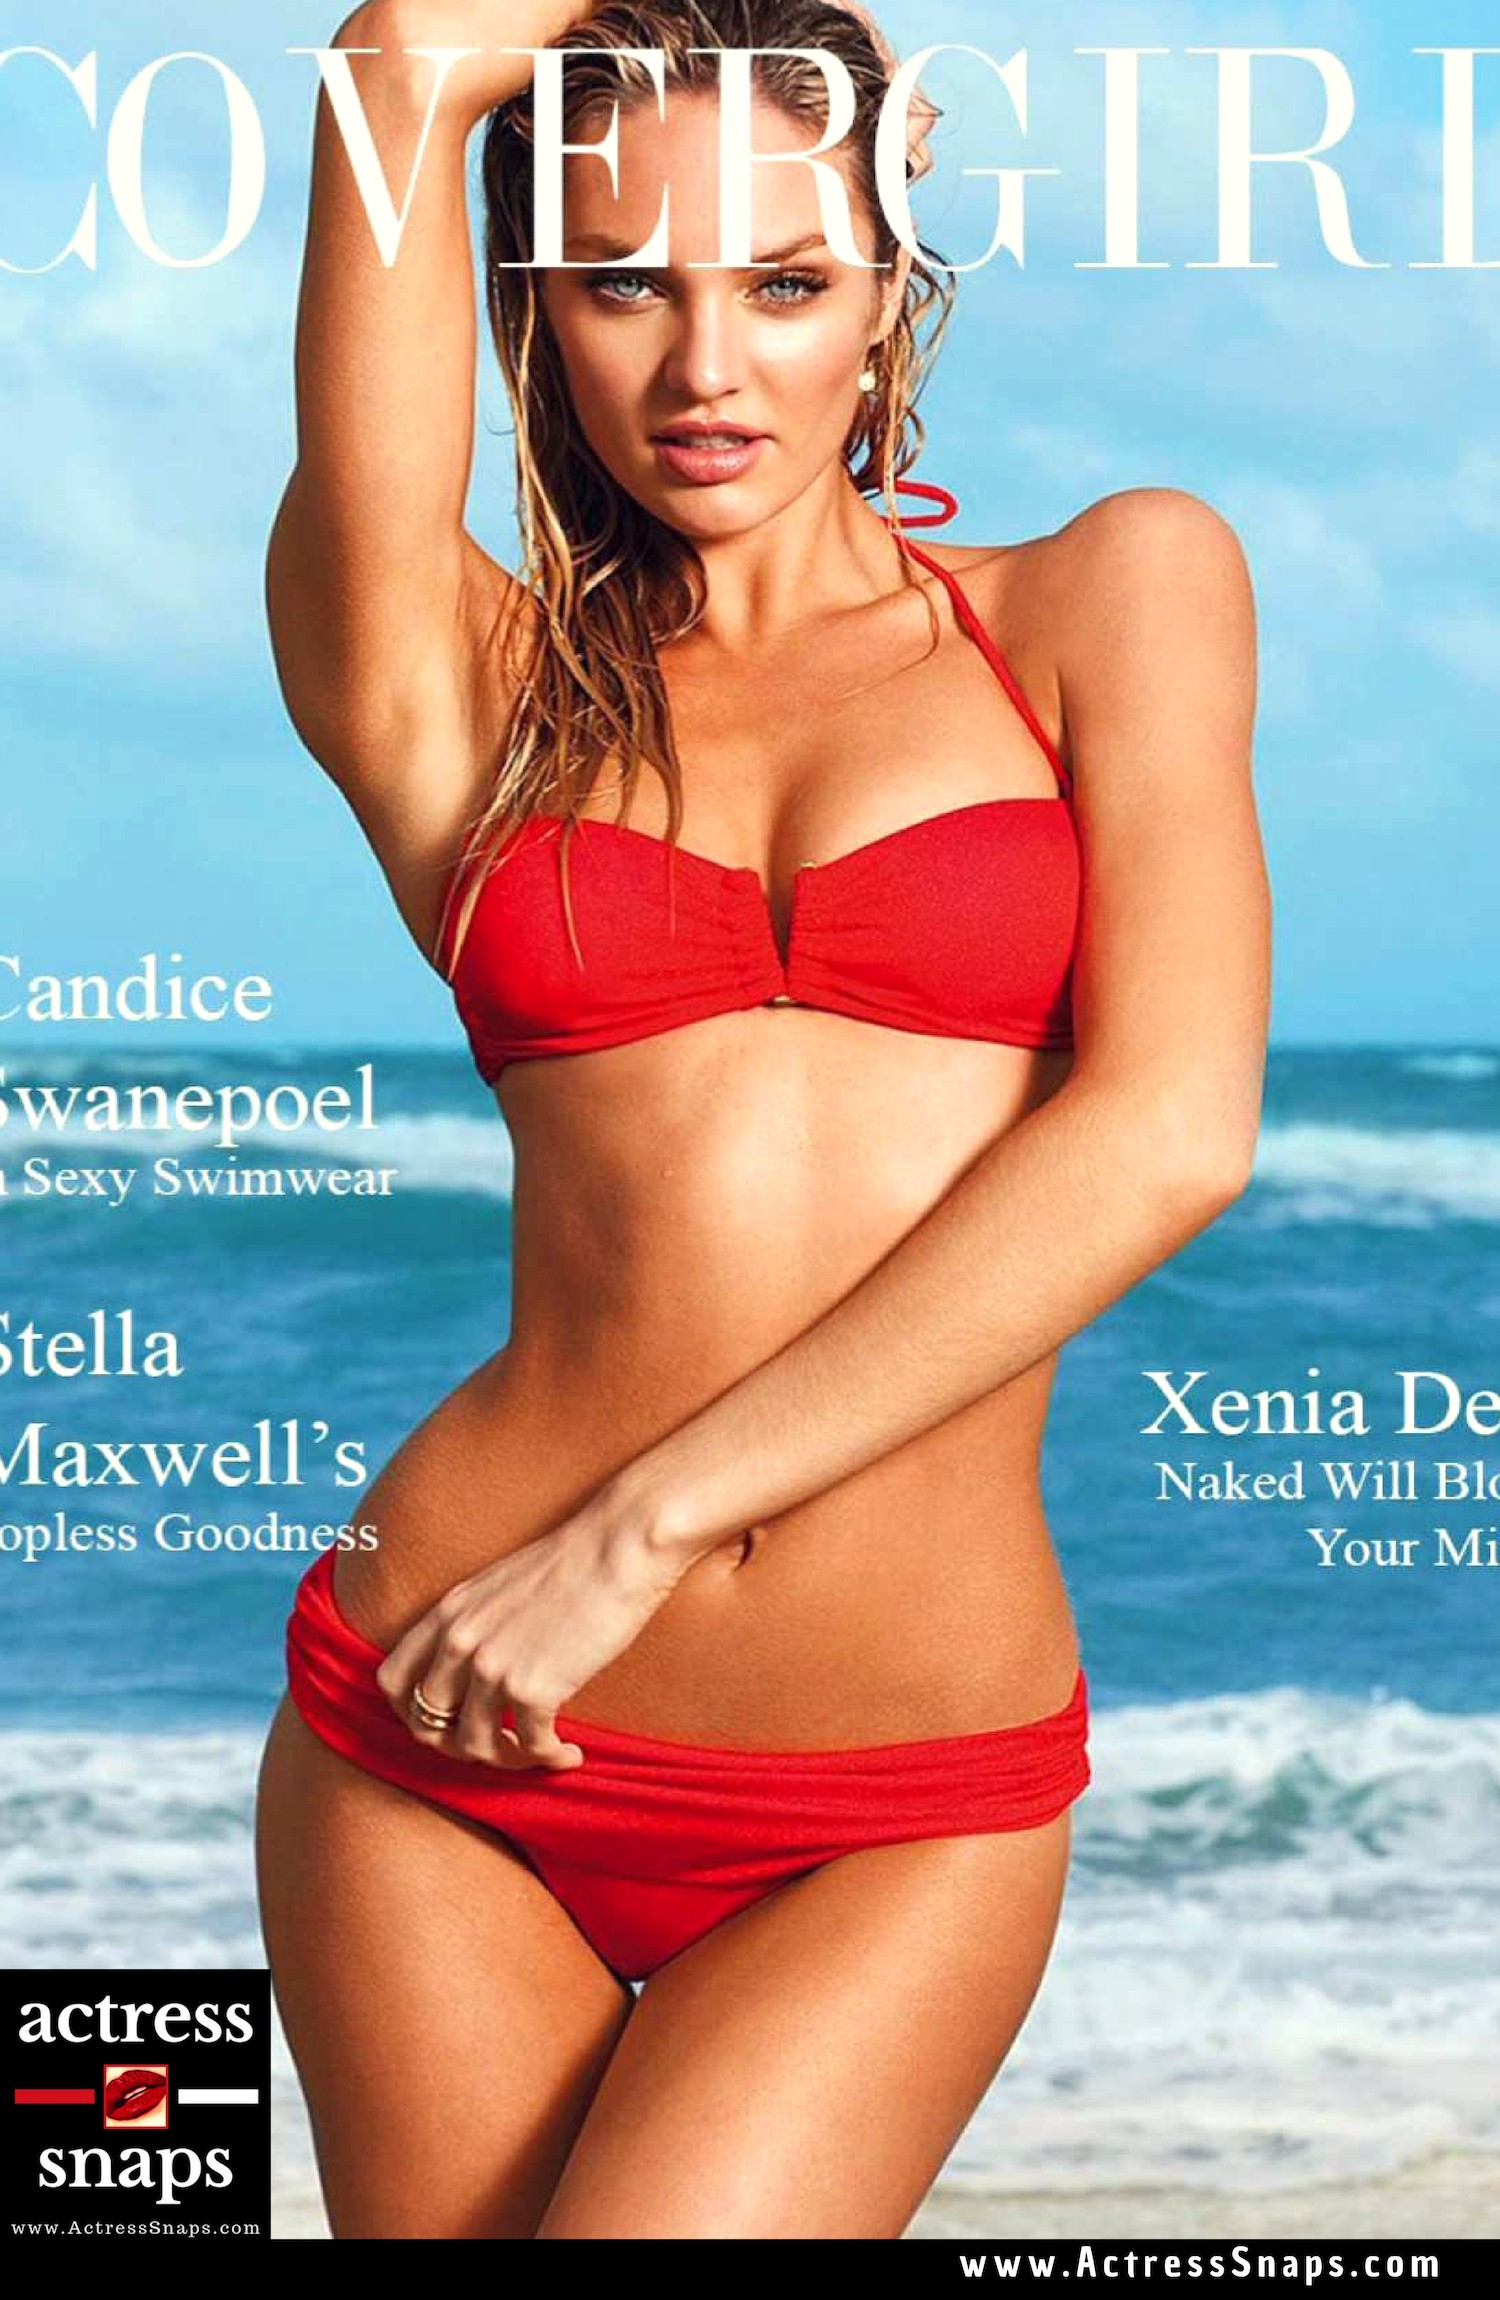 Sexy Candice Swanepoel Lingerie Photos collections from CoverGirl Magazine